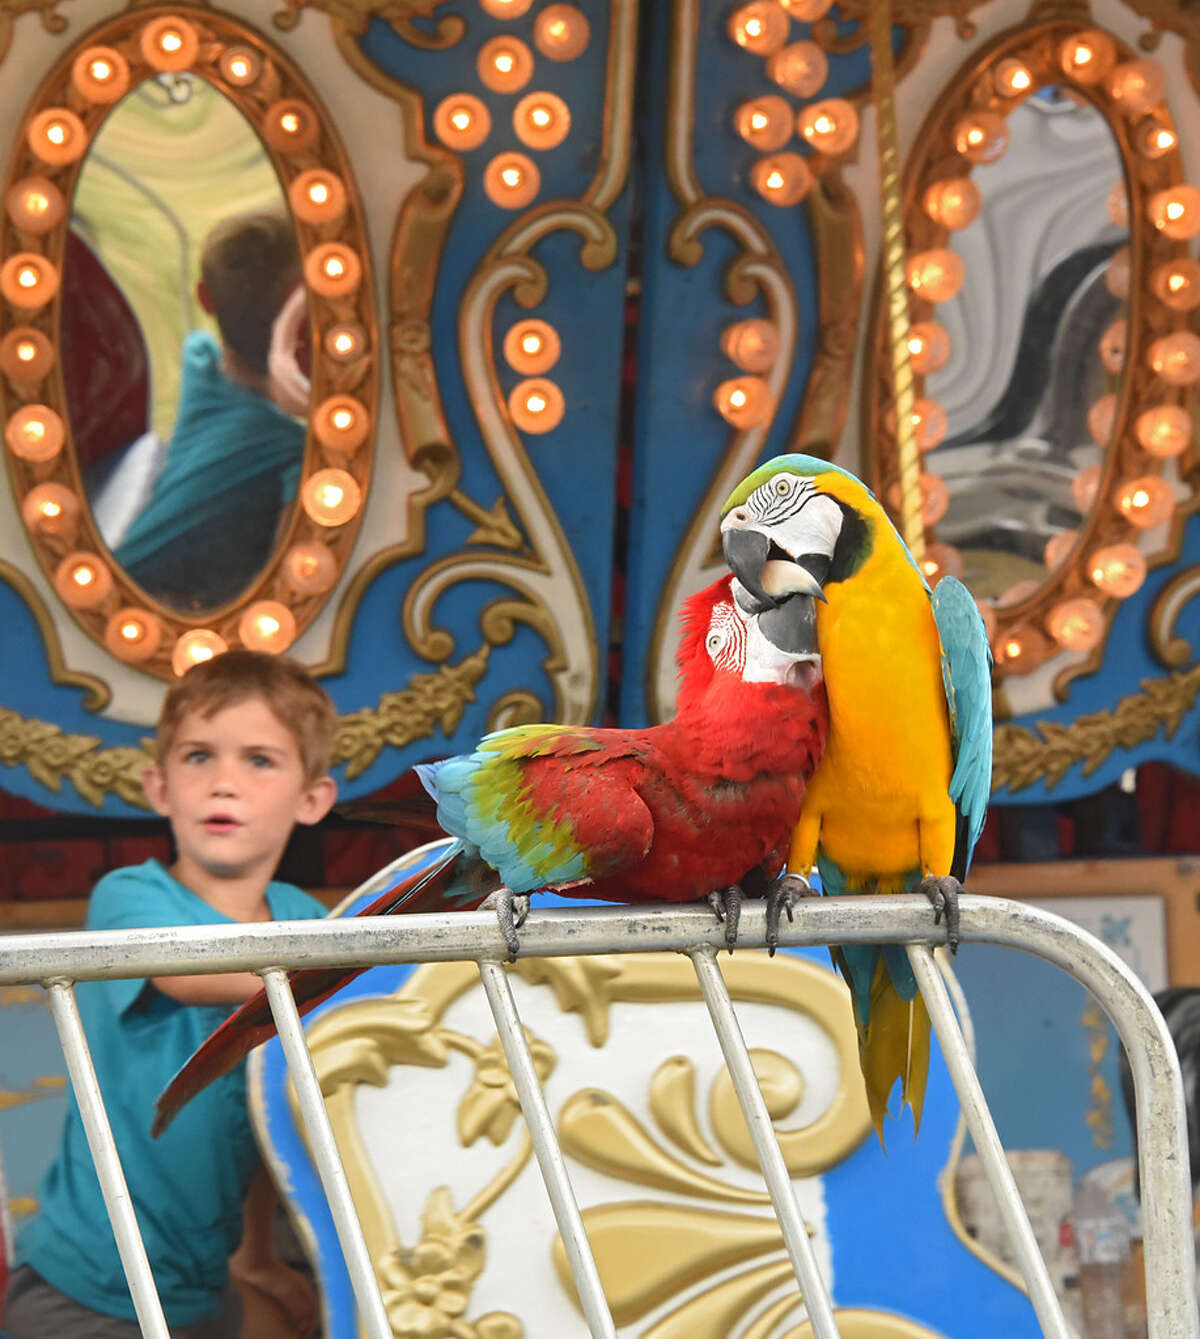 A boy riding the merry-go-round looks at a couple parrots sitting on a fence at the Saratoga County Fair on Wednesday, July 25, 2018 in Ballston Spa, N.Y. (Lori Van Buren/Times Union)